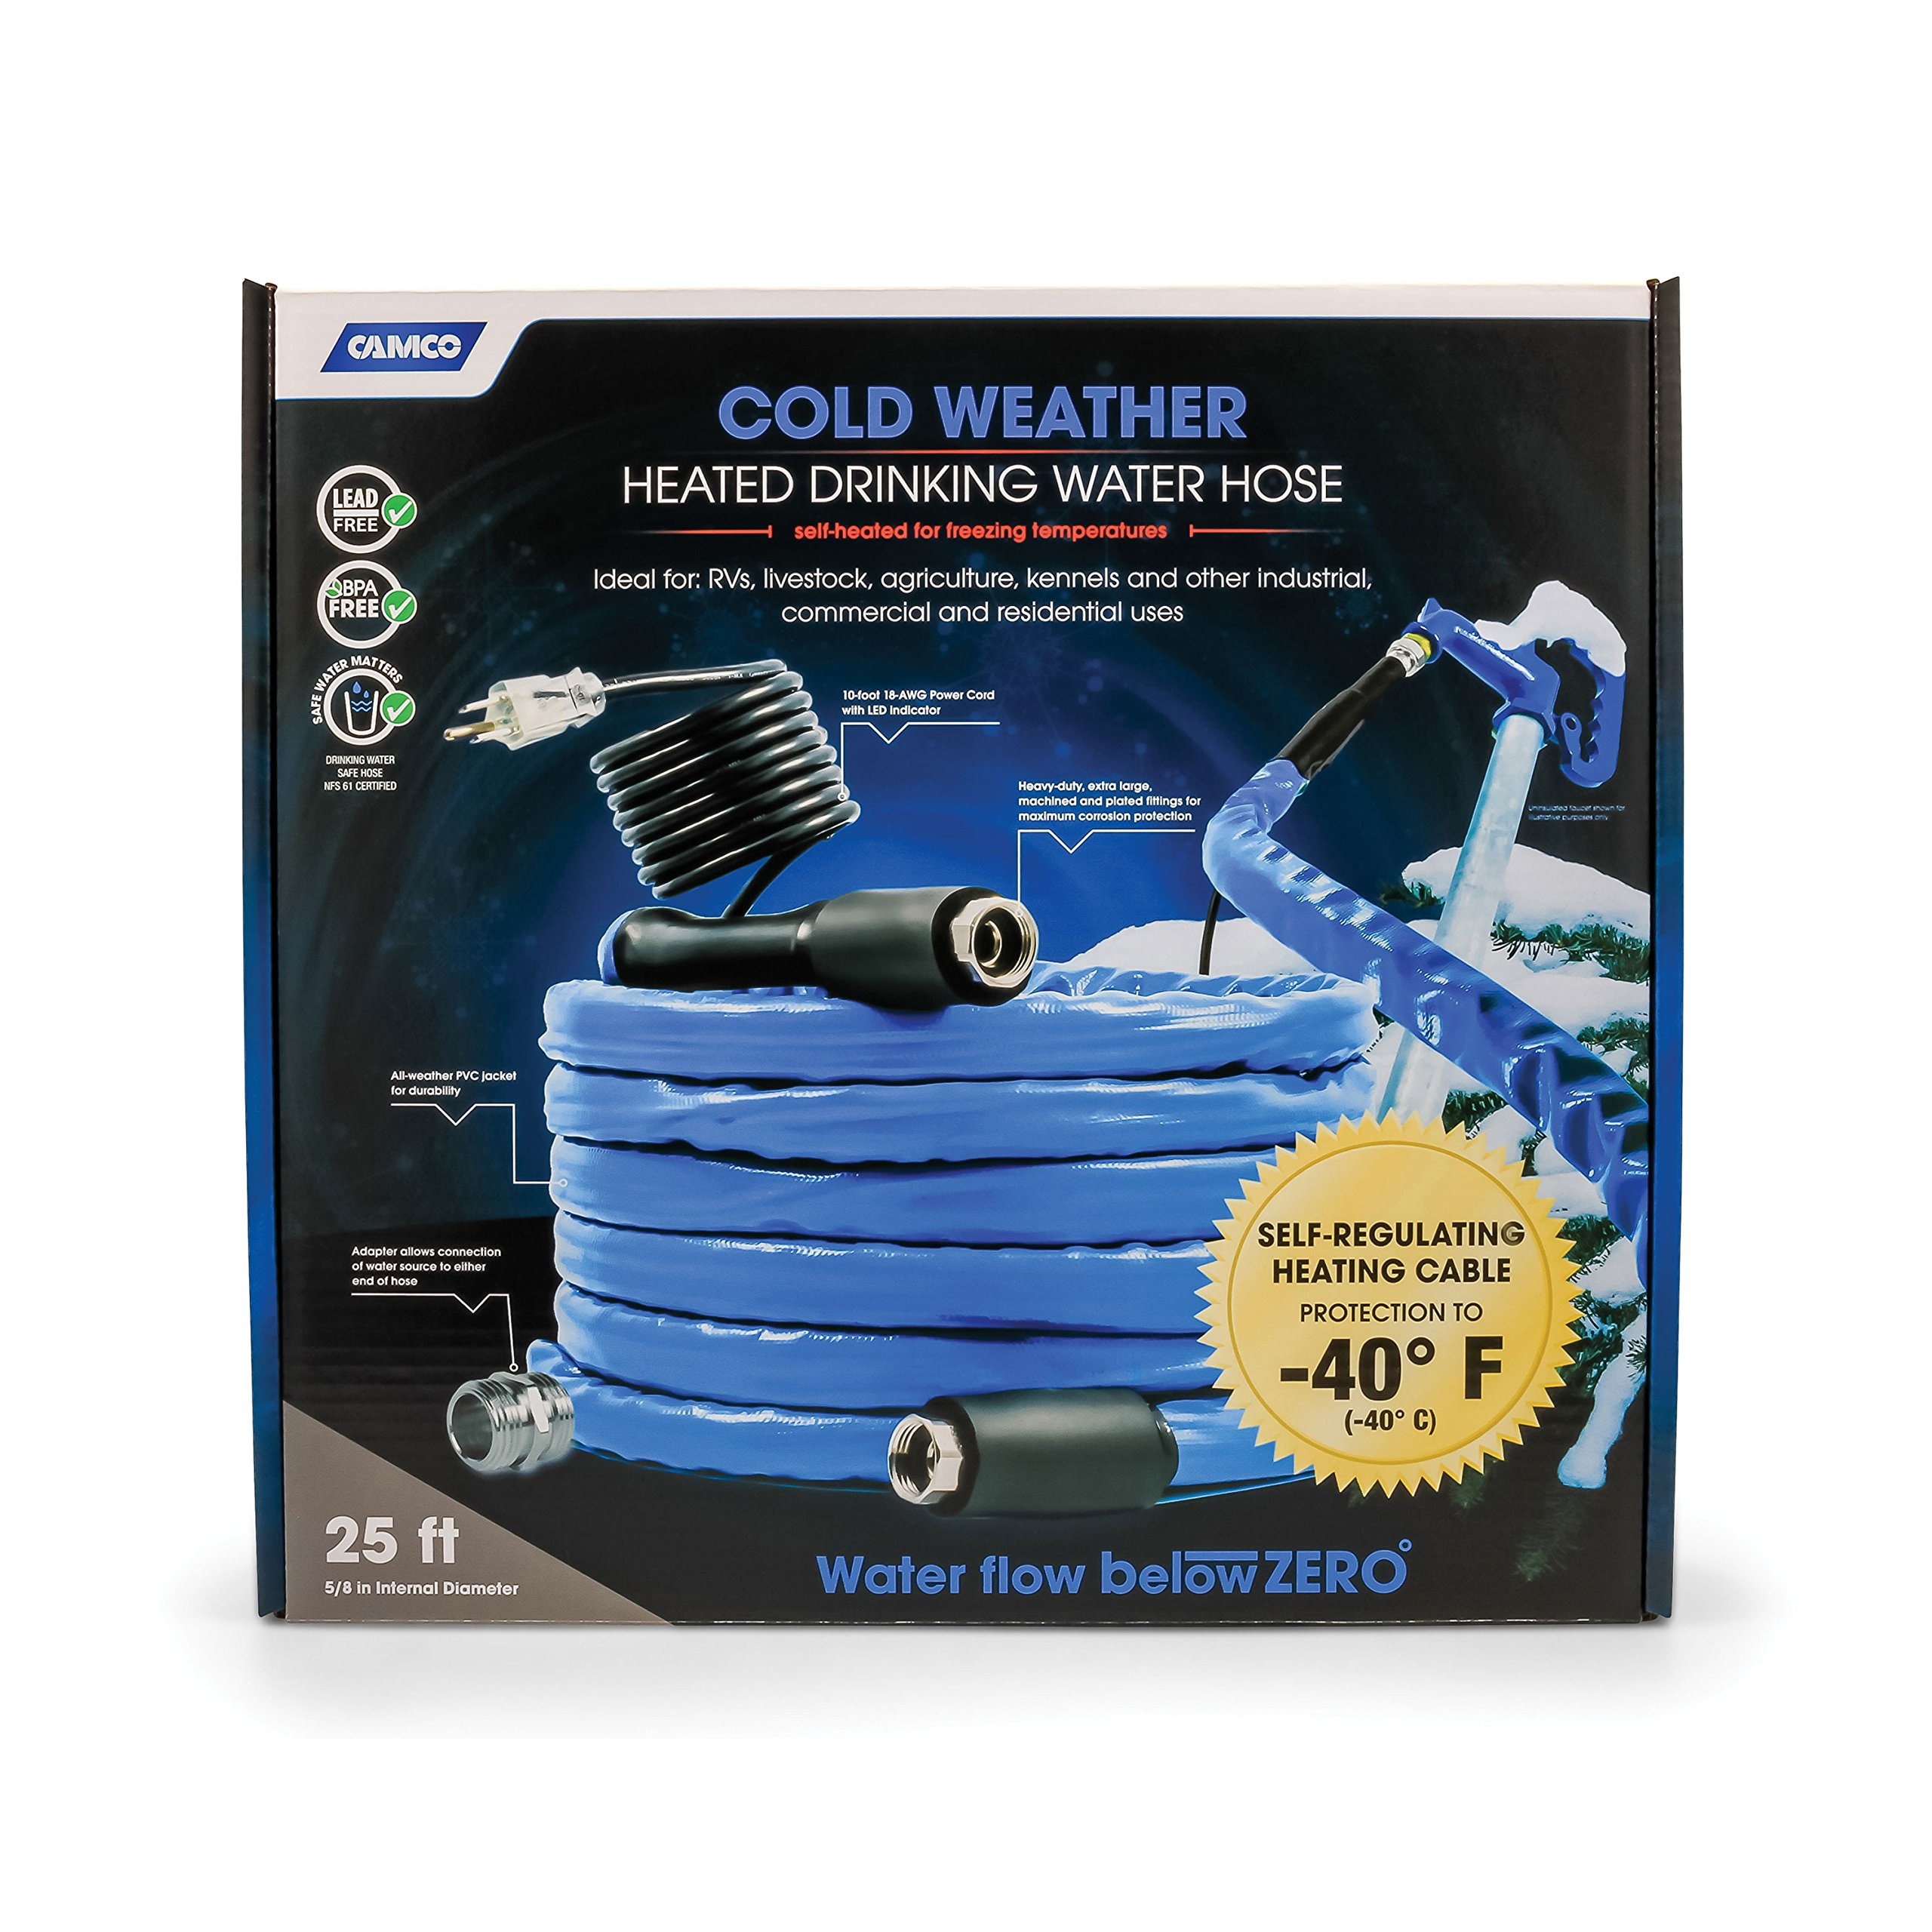 Camco 25ft Cold Weather Heated Drinking Water Hose Can Withstand Temperatures Down to -40°F/C-  Lead and BPA Free, Reinforced for Maximum Kink Resistance, 5/8'' Inner Diameter (22922) by Camco